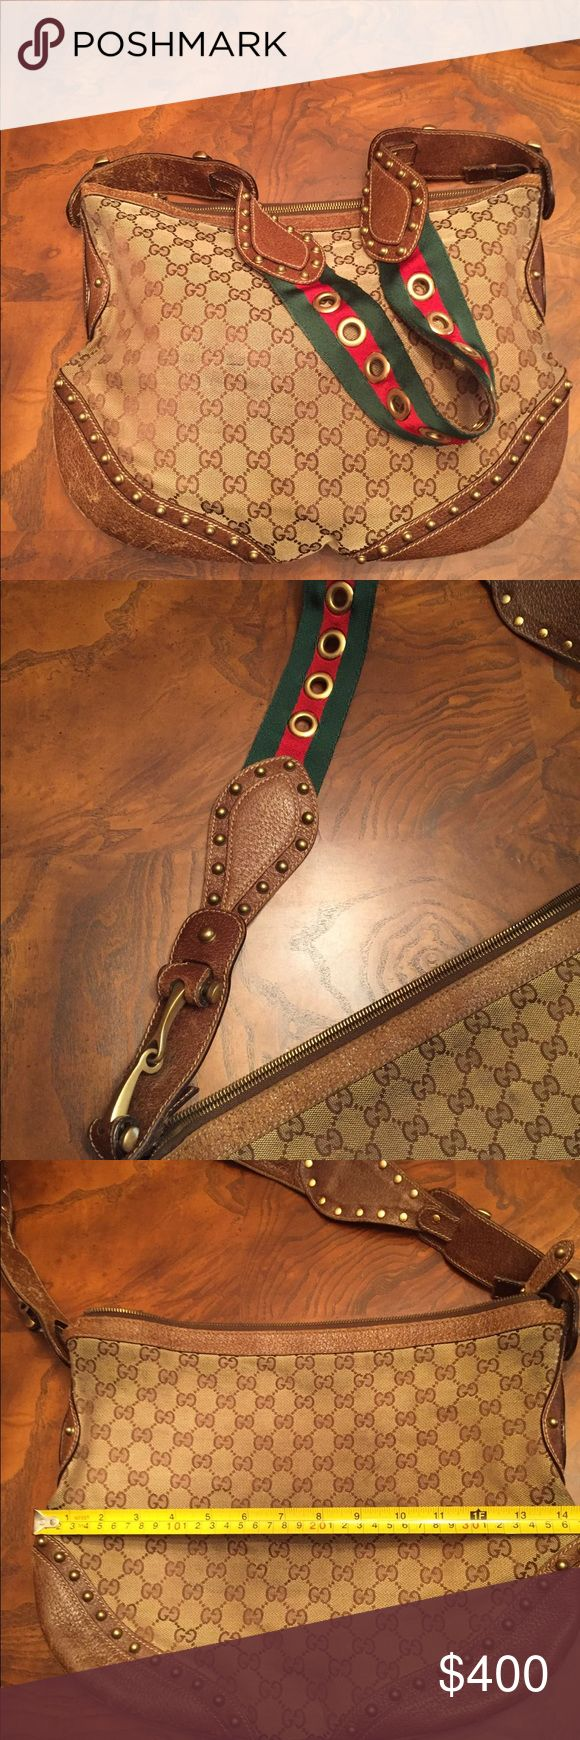 classic Gucci Pelham hobo style purse with stud Authentic. Gorgeous strap and hardware. Exterior and interior zippers work fine.  Purchased several years ago but, I don't know from which location. It is one of my absolute favorites so I carried it a bit. Please see the pictures for signs of wear. Still has life in it. I've been limiting use to special outings and still get compliments. Started carrying the more worn side next to me so the wear doesn't show as much. See pictures for…